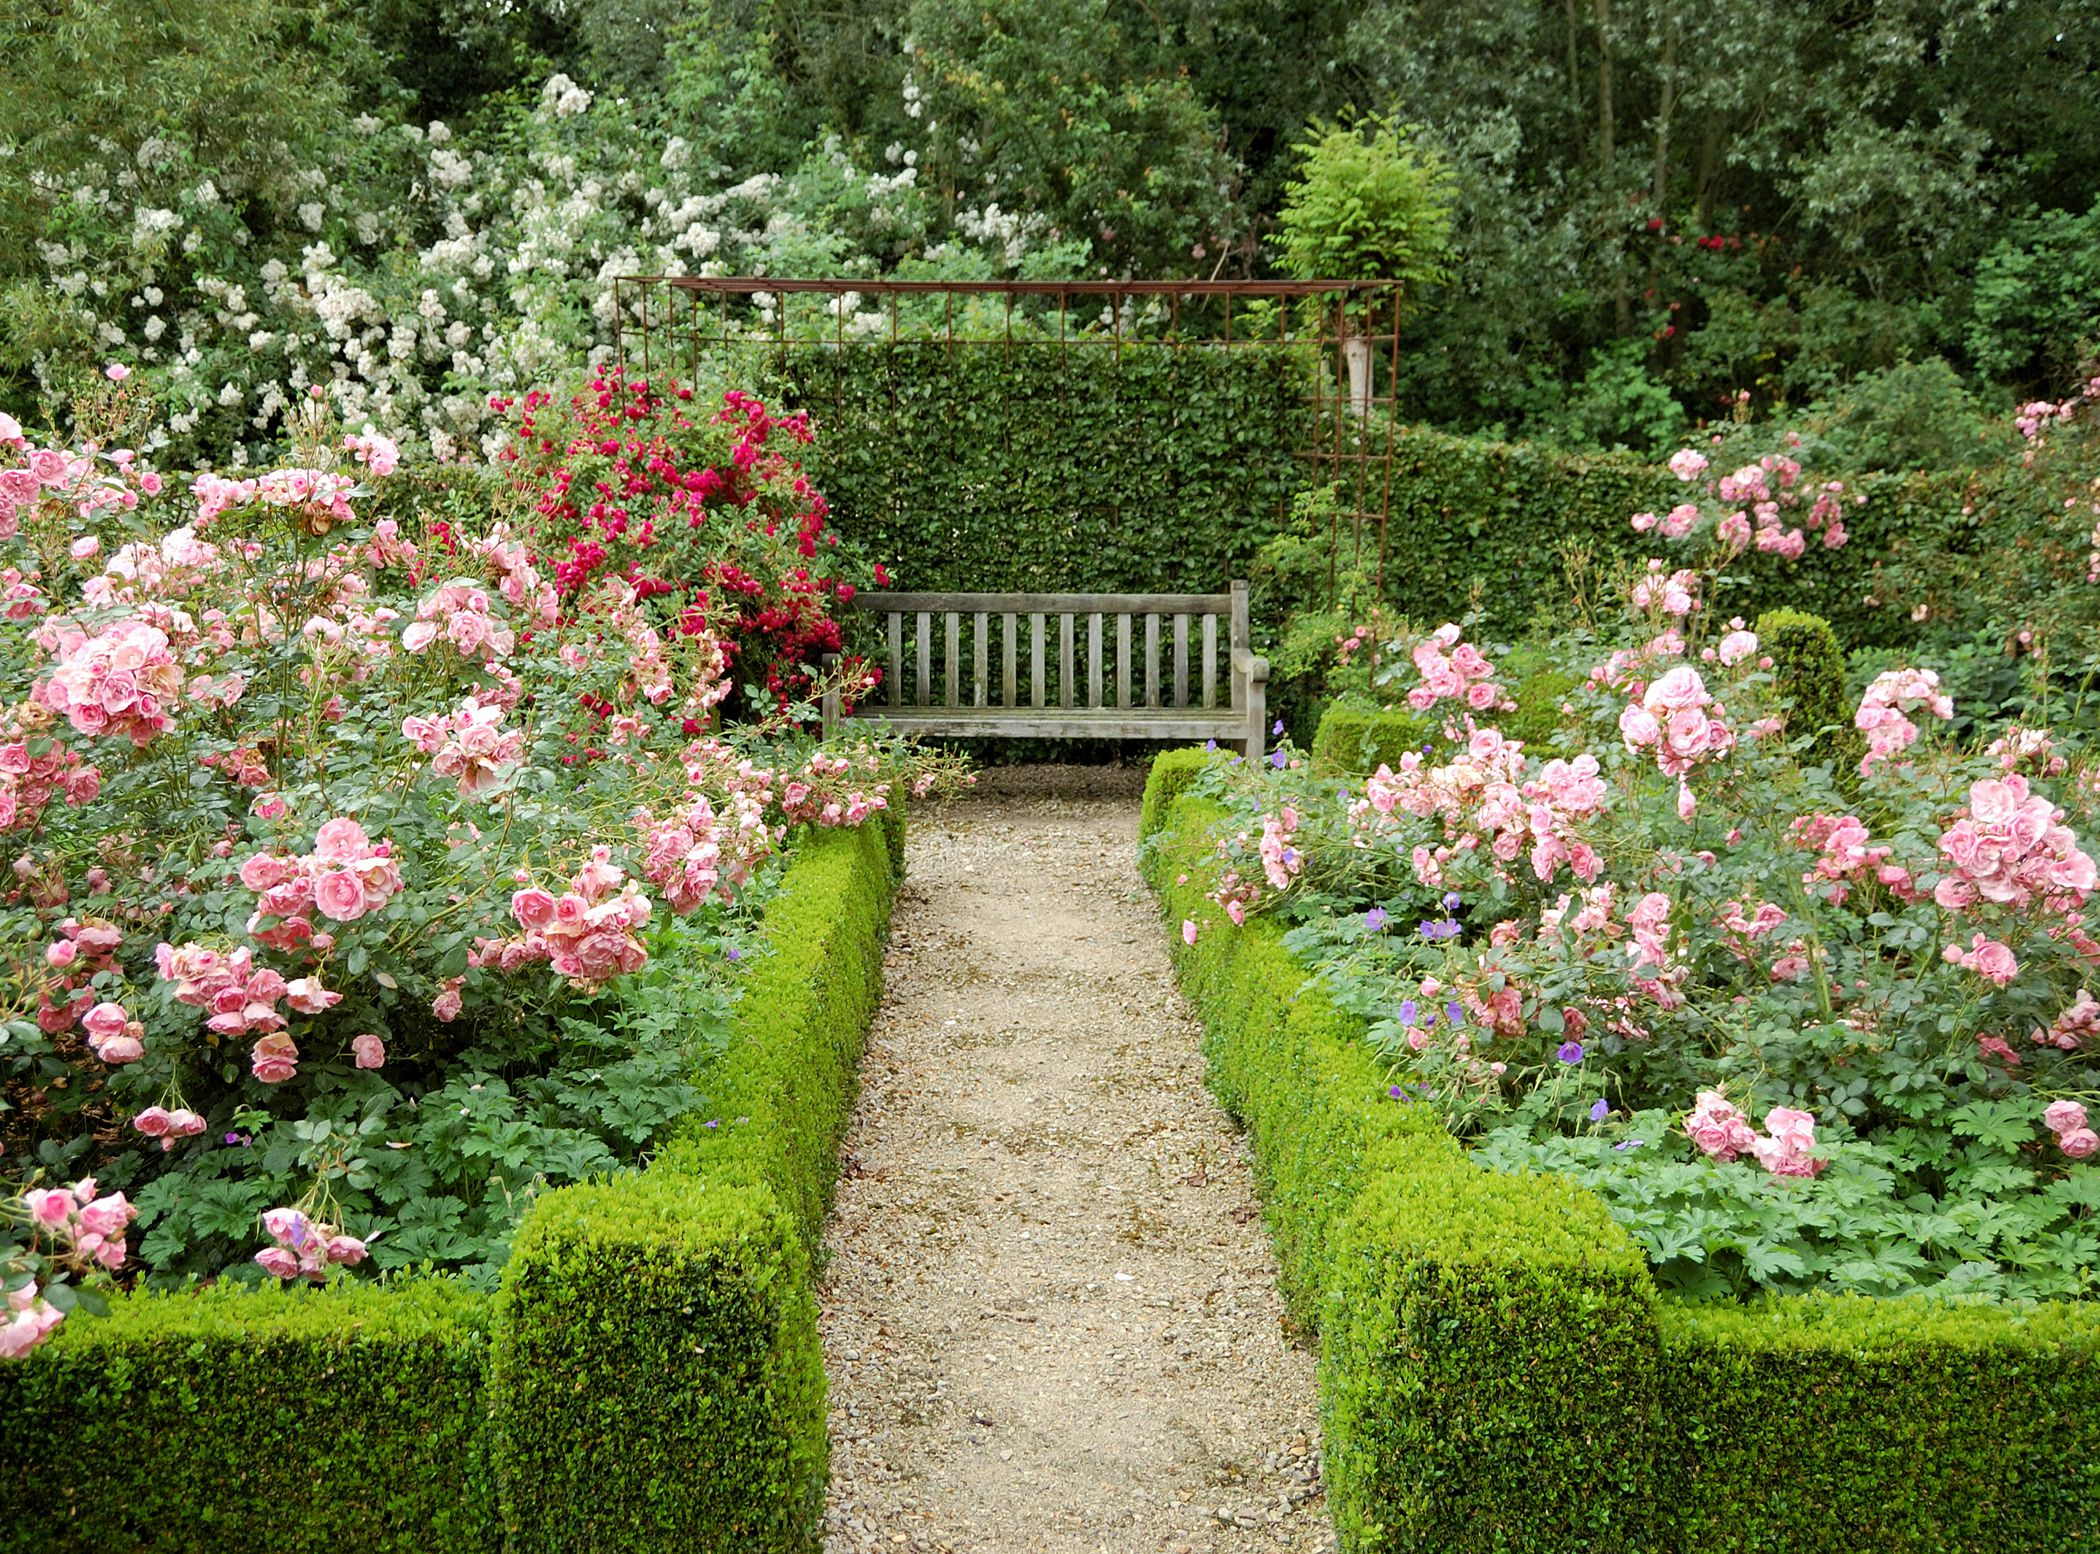 How To Make A Rose Garden Design - Garden Design Ideas